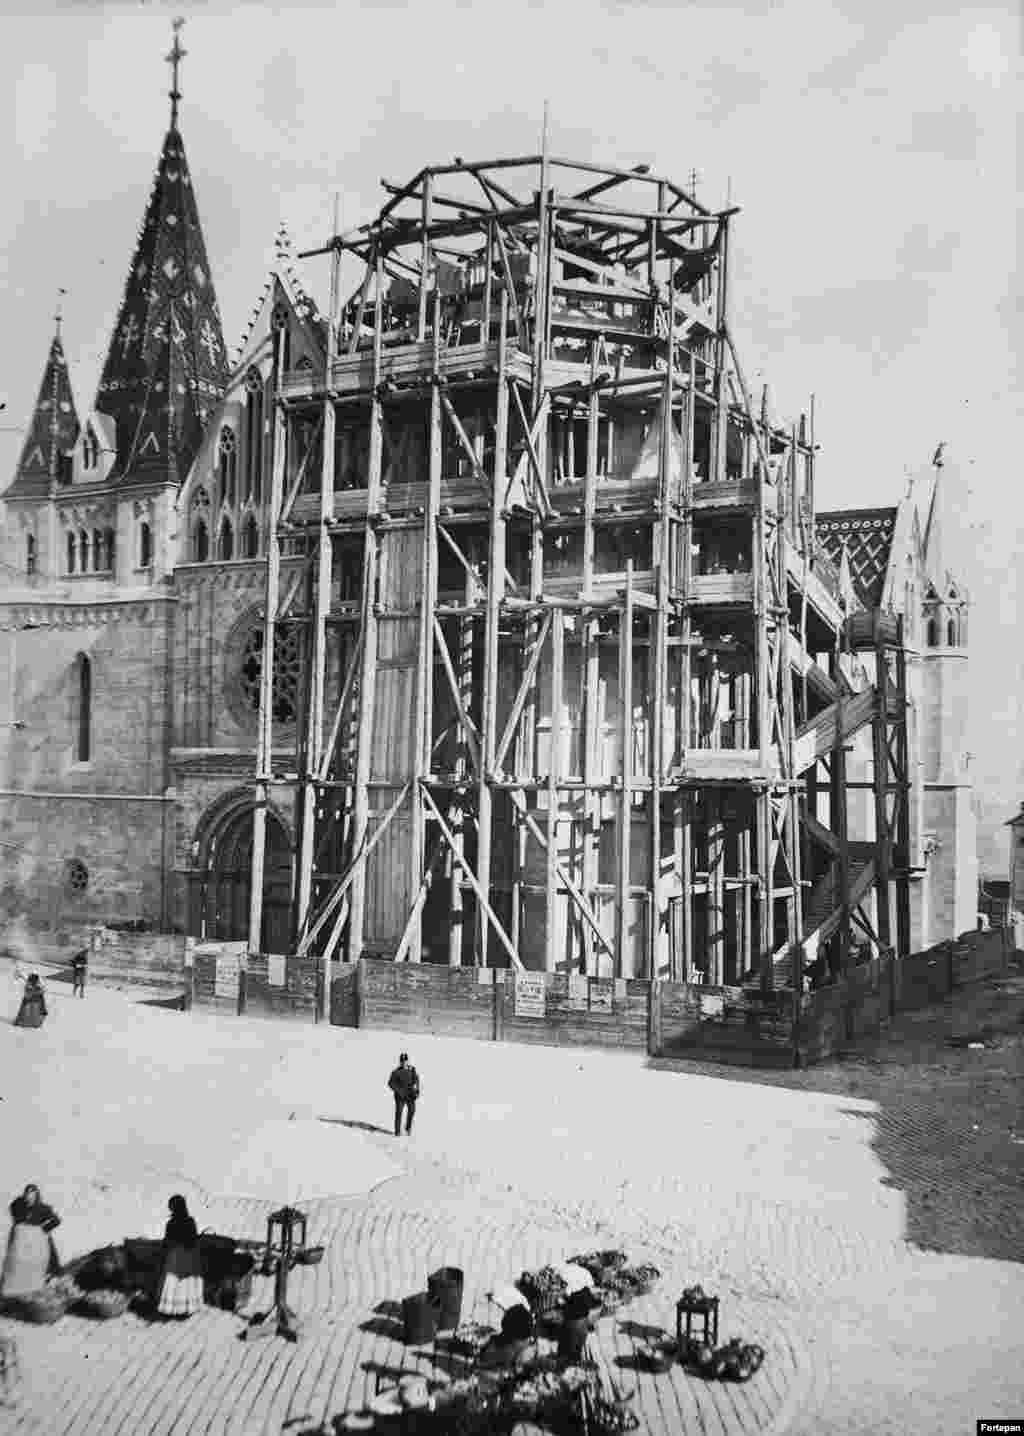 1893: Matthias Church, near Buda Castle, under reconstruction. The church was originally built in the 14th century but rebuilt over more than two decades in the late 1800s with various architectural flourishes, including gargoyles and a patterned tile roof.